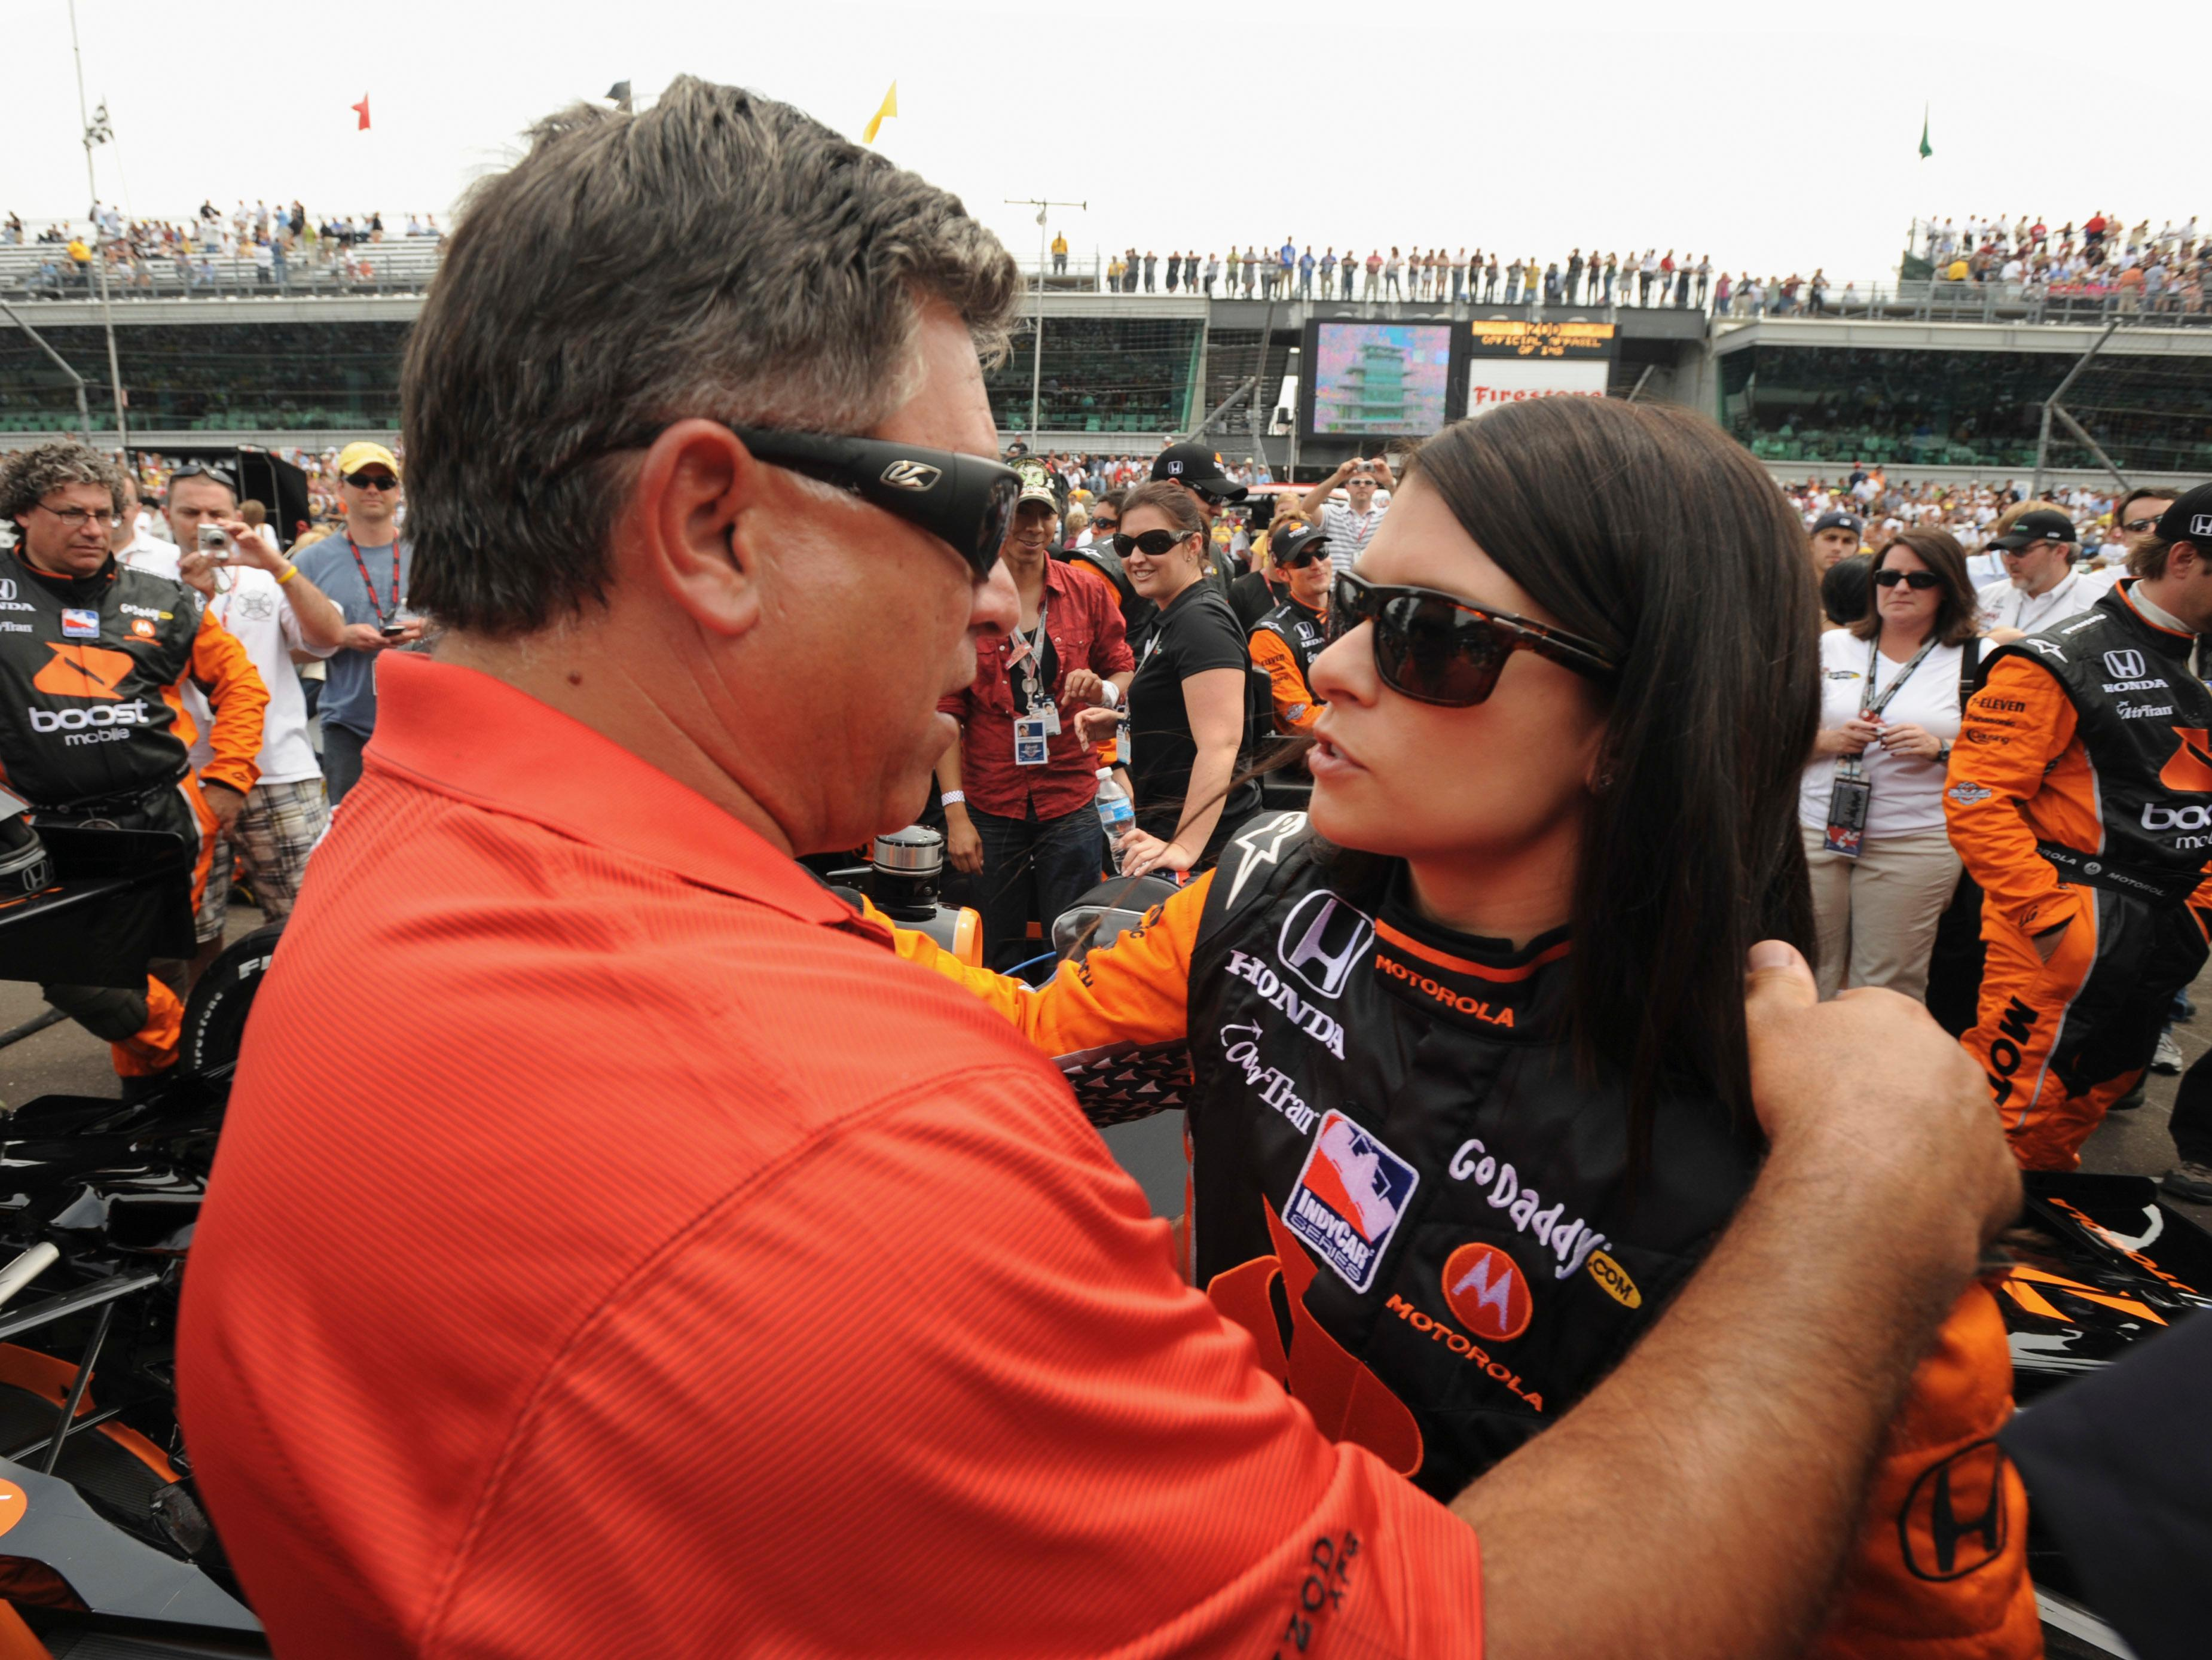 FILE - In this May 24, 2009, file photo, Danica Patrick, right, talks with her father T.J. Patrick before the 93rd running of the Indianapolis 500 auto race at the Indianapolis Motor Speedway in Indianapolis. Patrick announced plans Friday, Nov. 17, 2017, to run just 2 races in 2018, the Daytona 500 and the Indianapolis 500, and end her full-time driving career. (AP Photo/Tom Strickland, File)